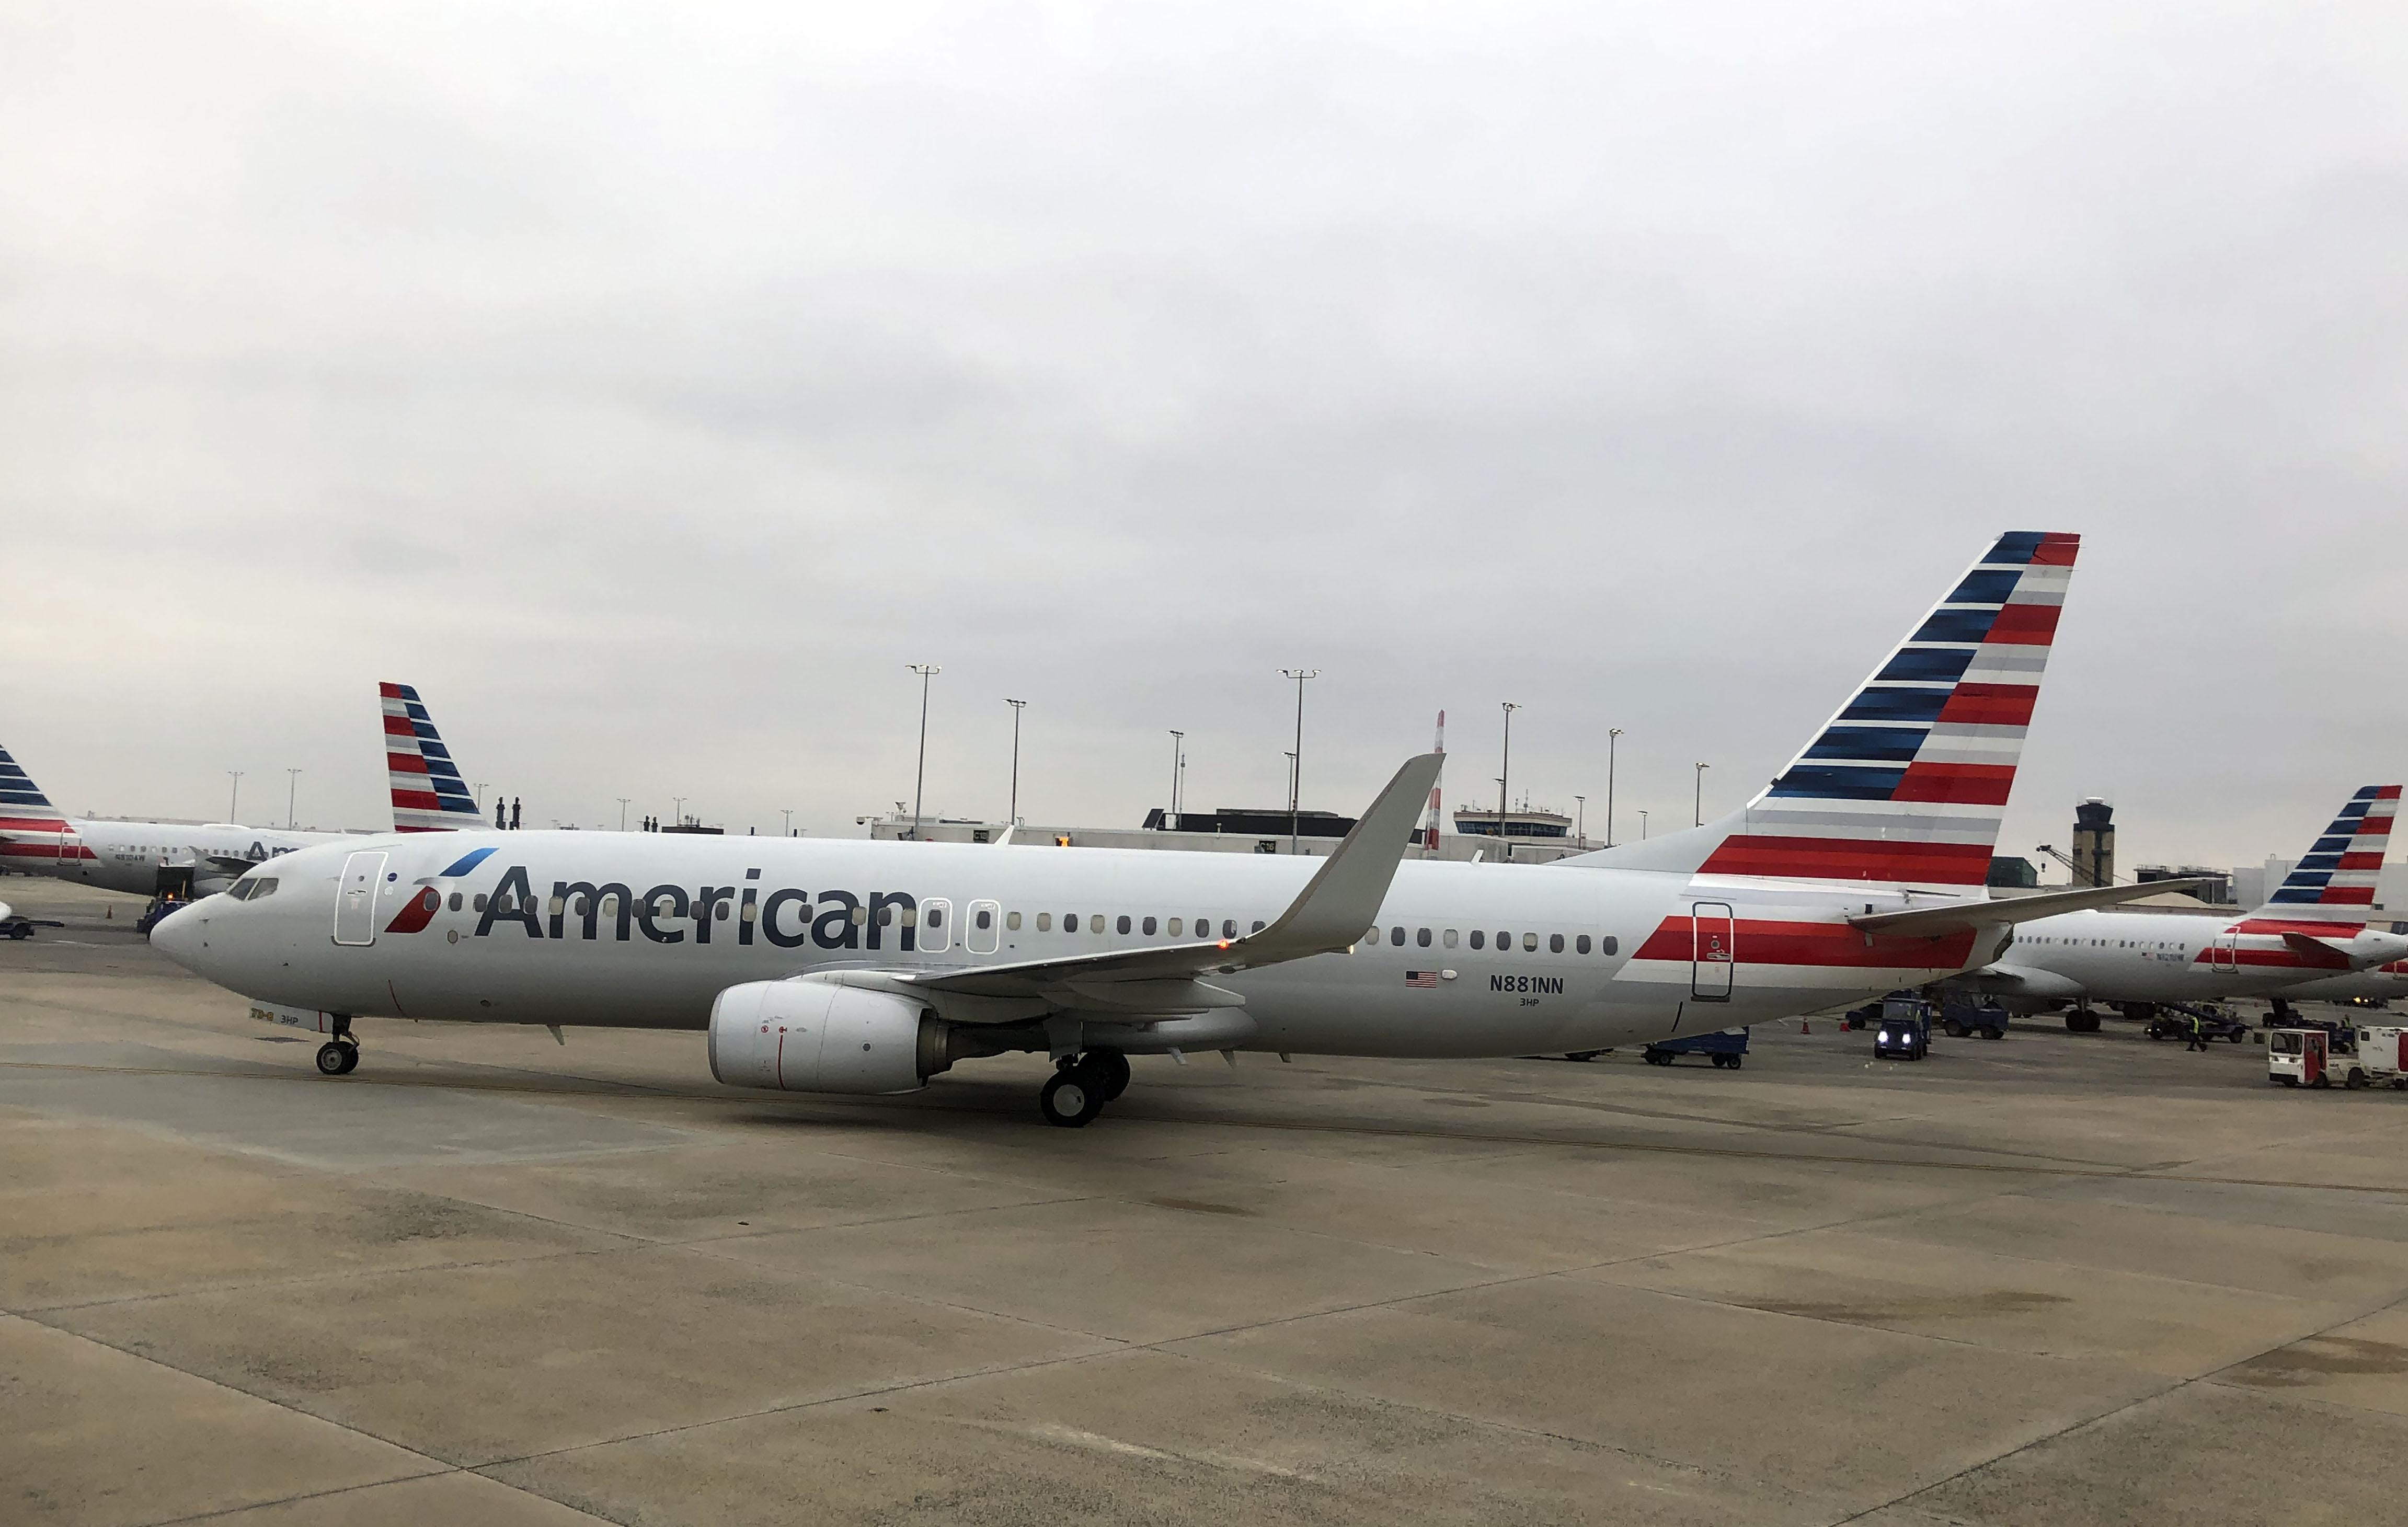 American Airlines plane at terminal